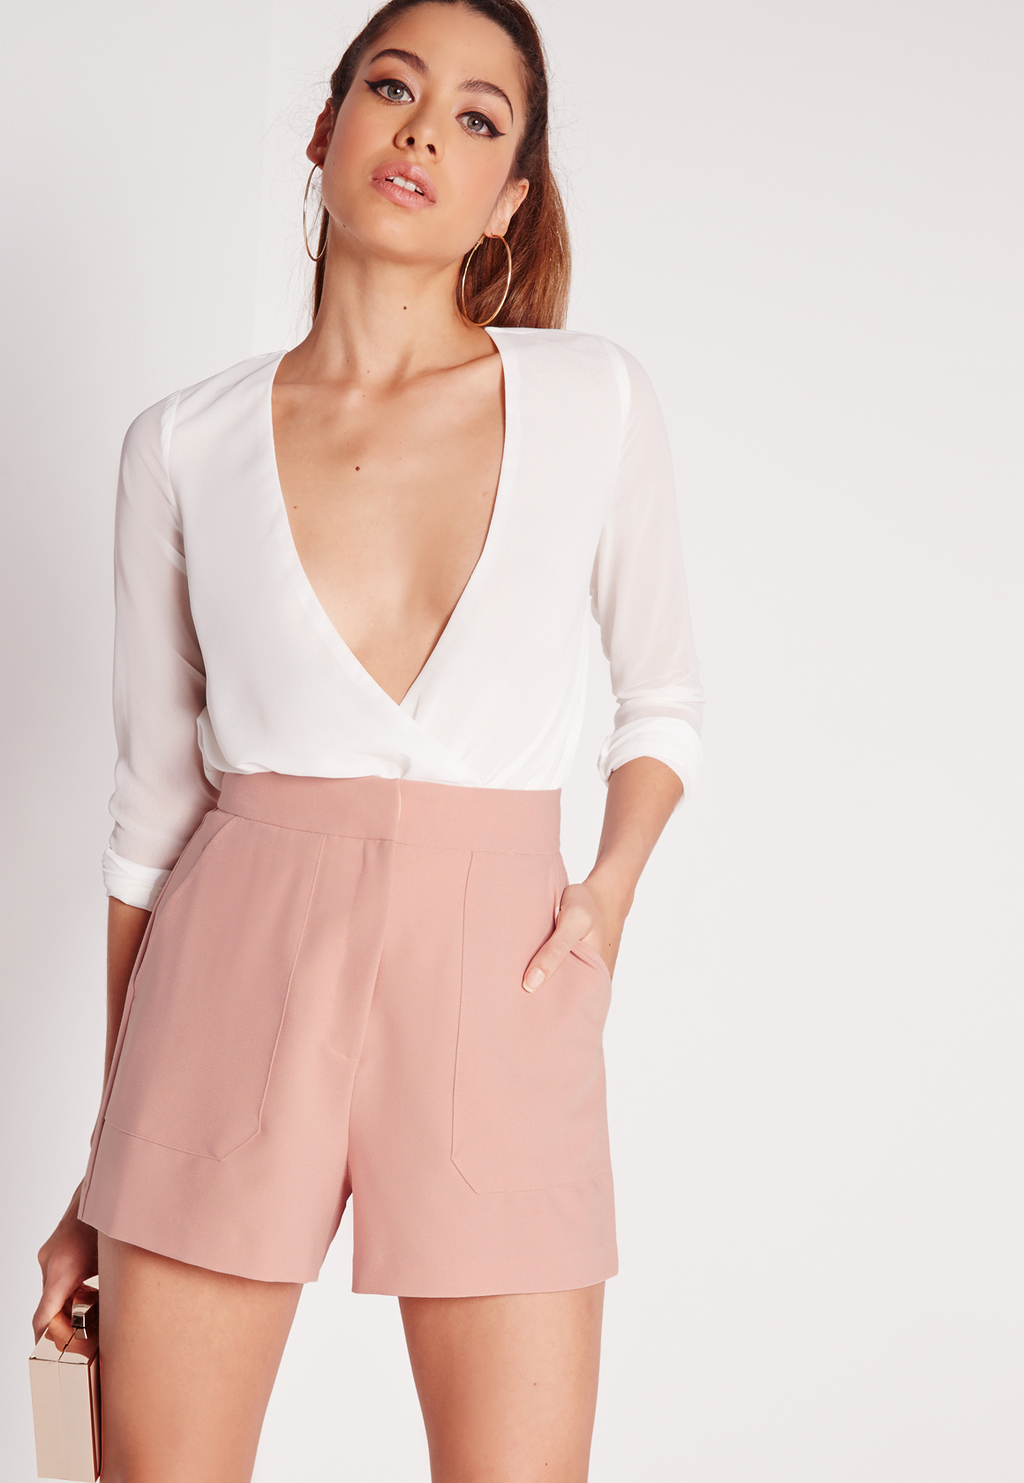 Front Pocket Tailored Shorts Pink, Pink - waist: high rise; predominant colour: blush; occasions: evening; fibres: viscose/rayon - stretch; pattern type: fabric; pattern: colourblock; texture group: woven light midweight; season: s/s 2016; style: tailored shorts; length: short shorts; fit: slim leg; wardrobe: event